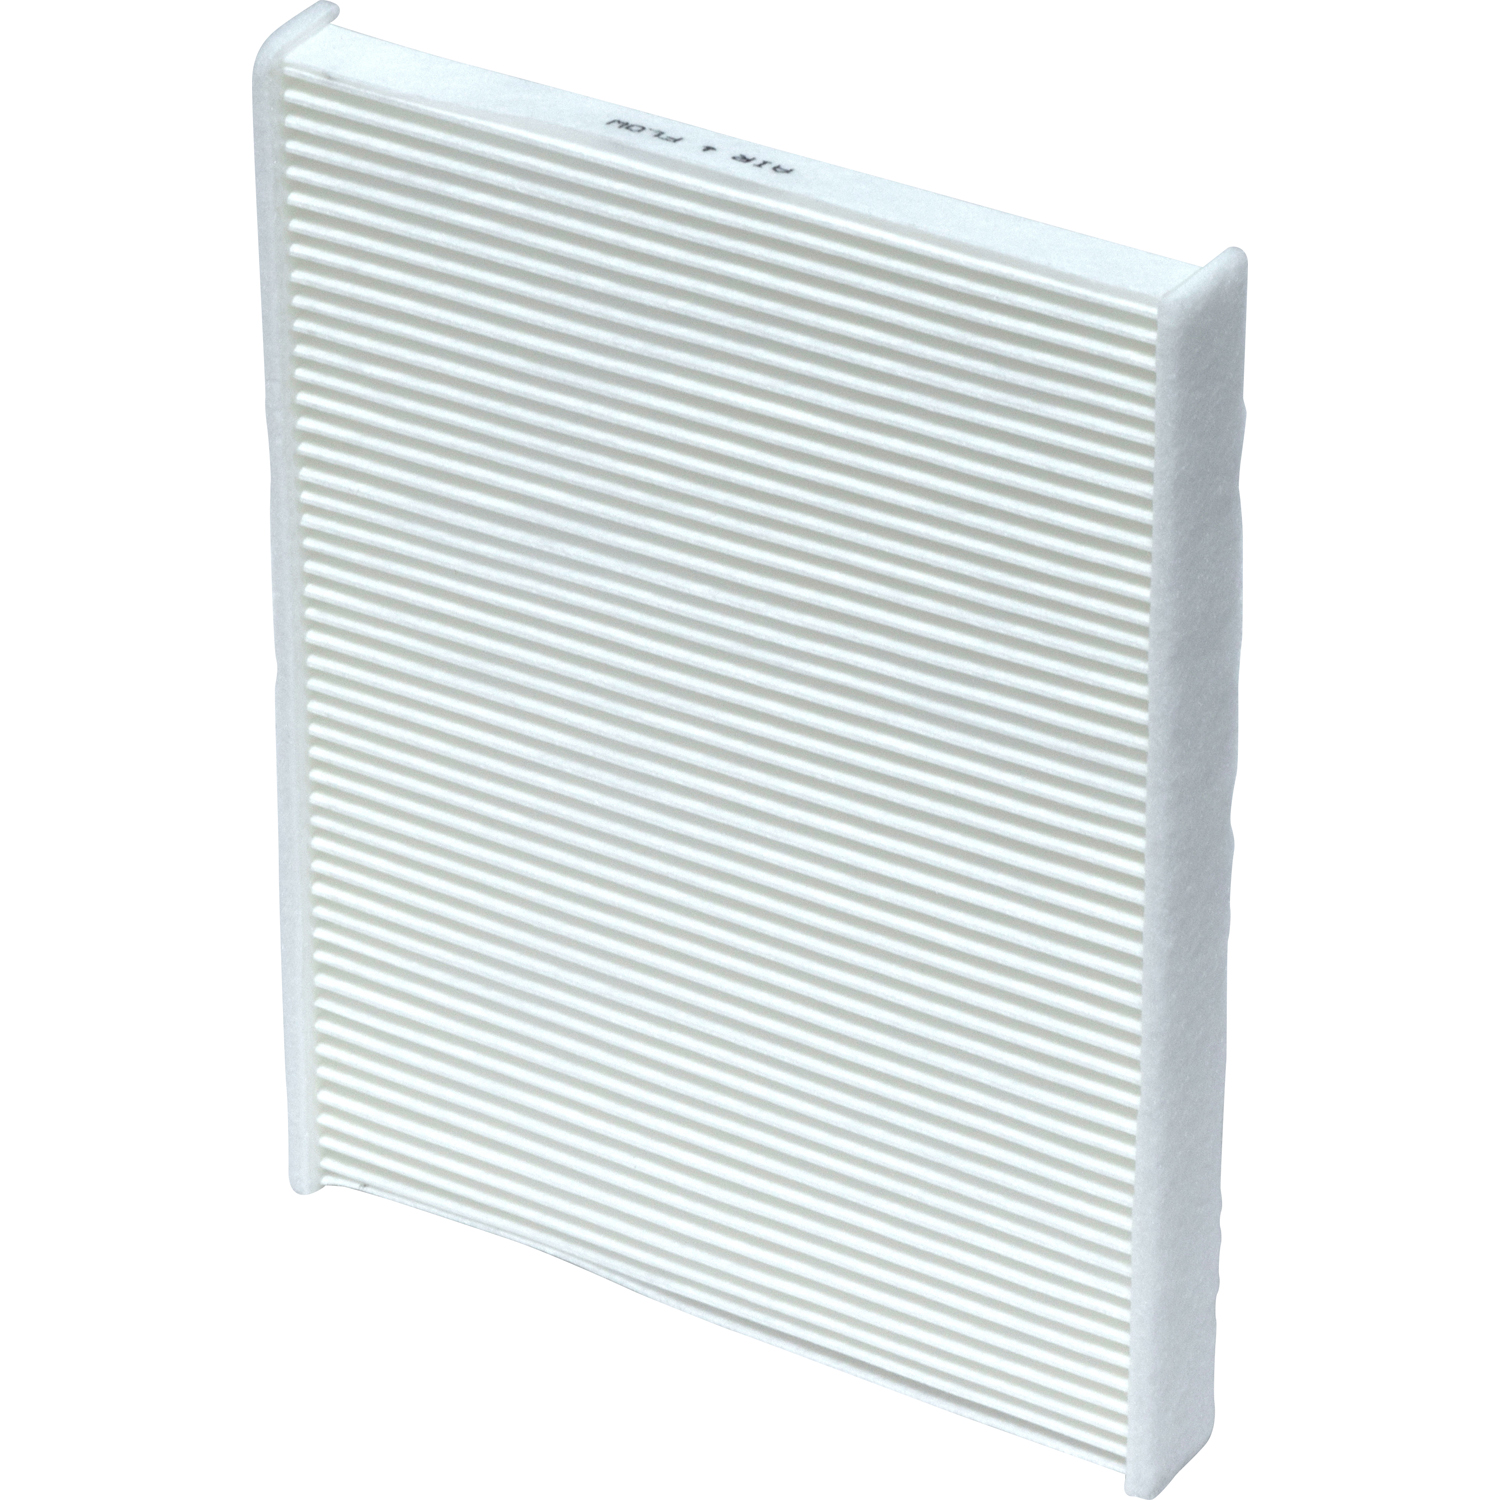 Charcoal Cabin Air Filter 11-14 FORD FIESTA